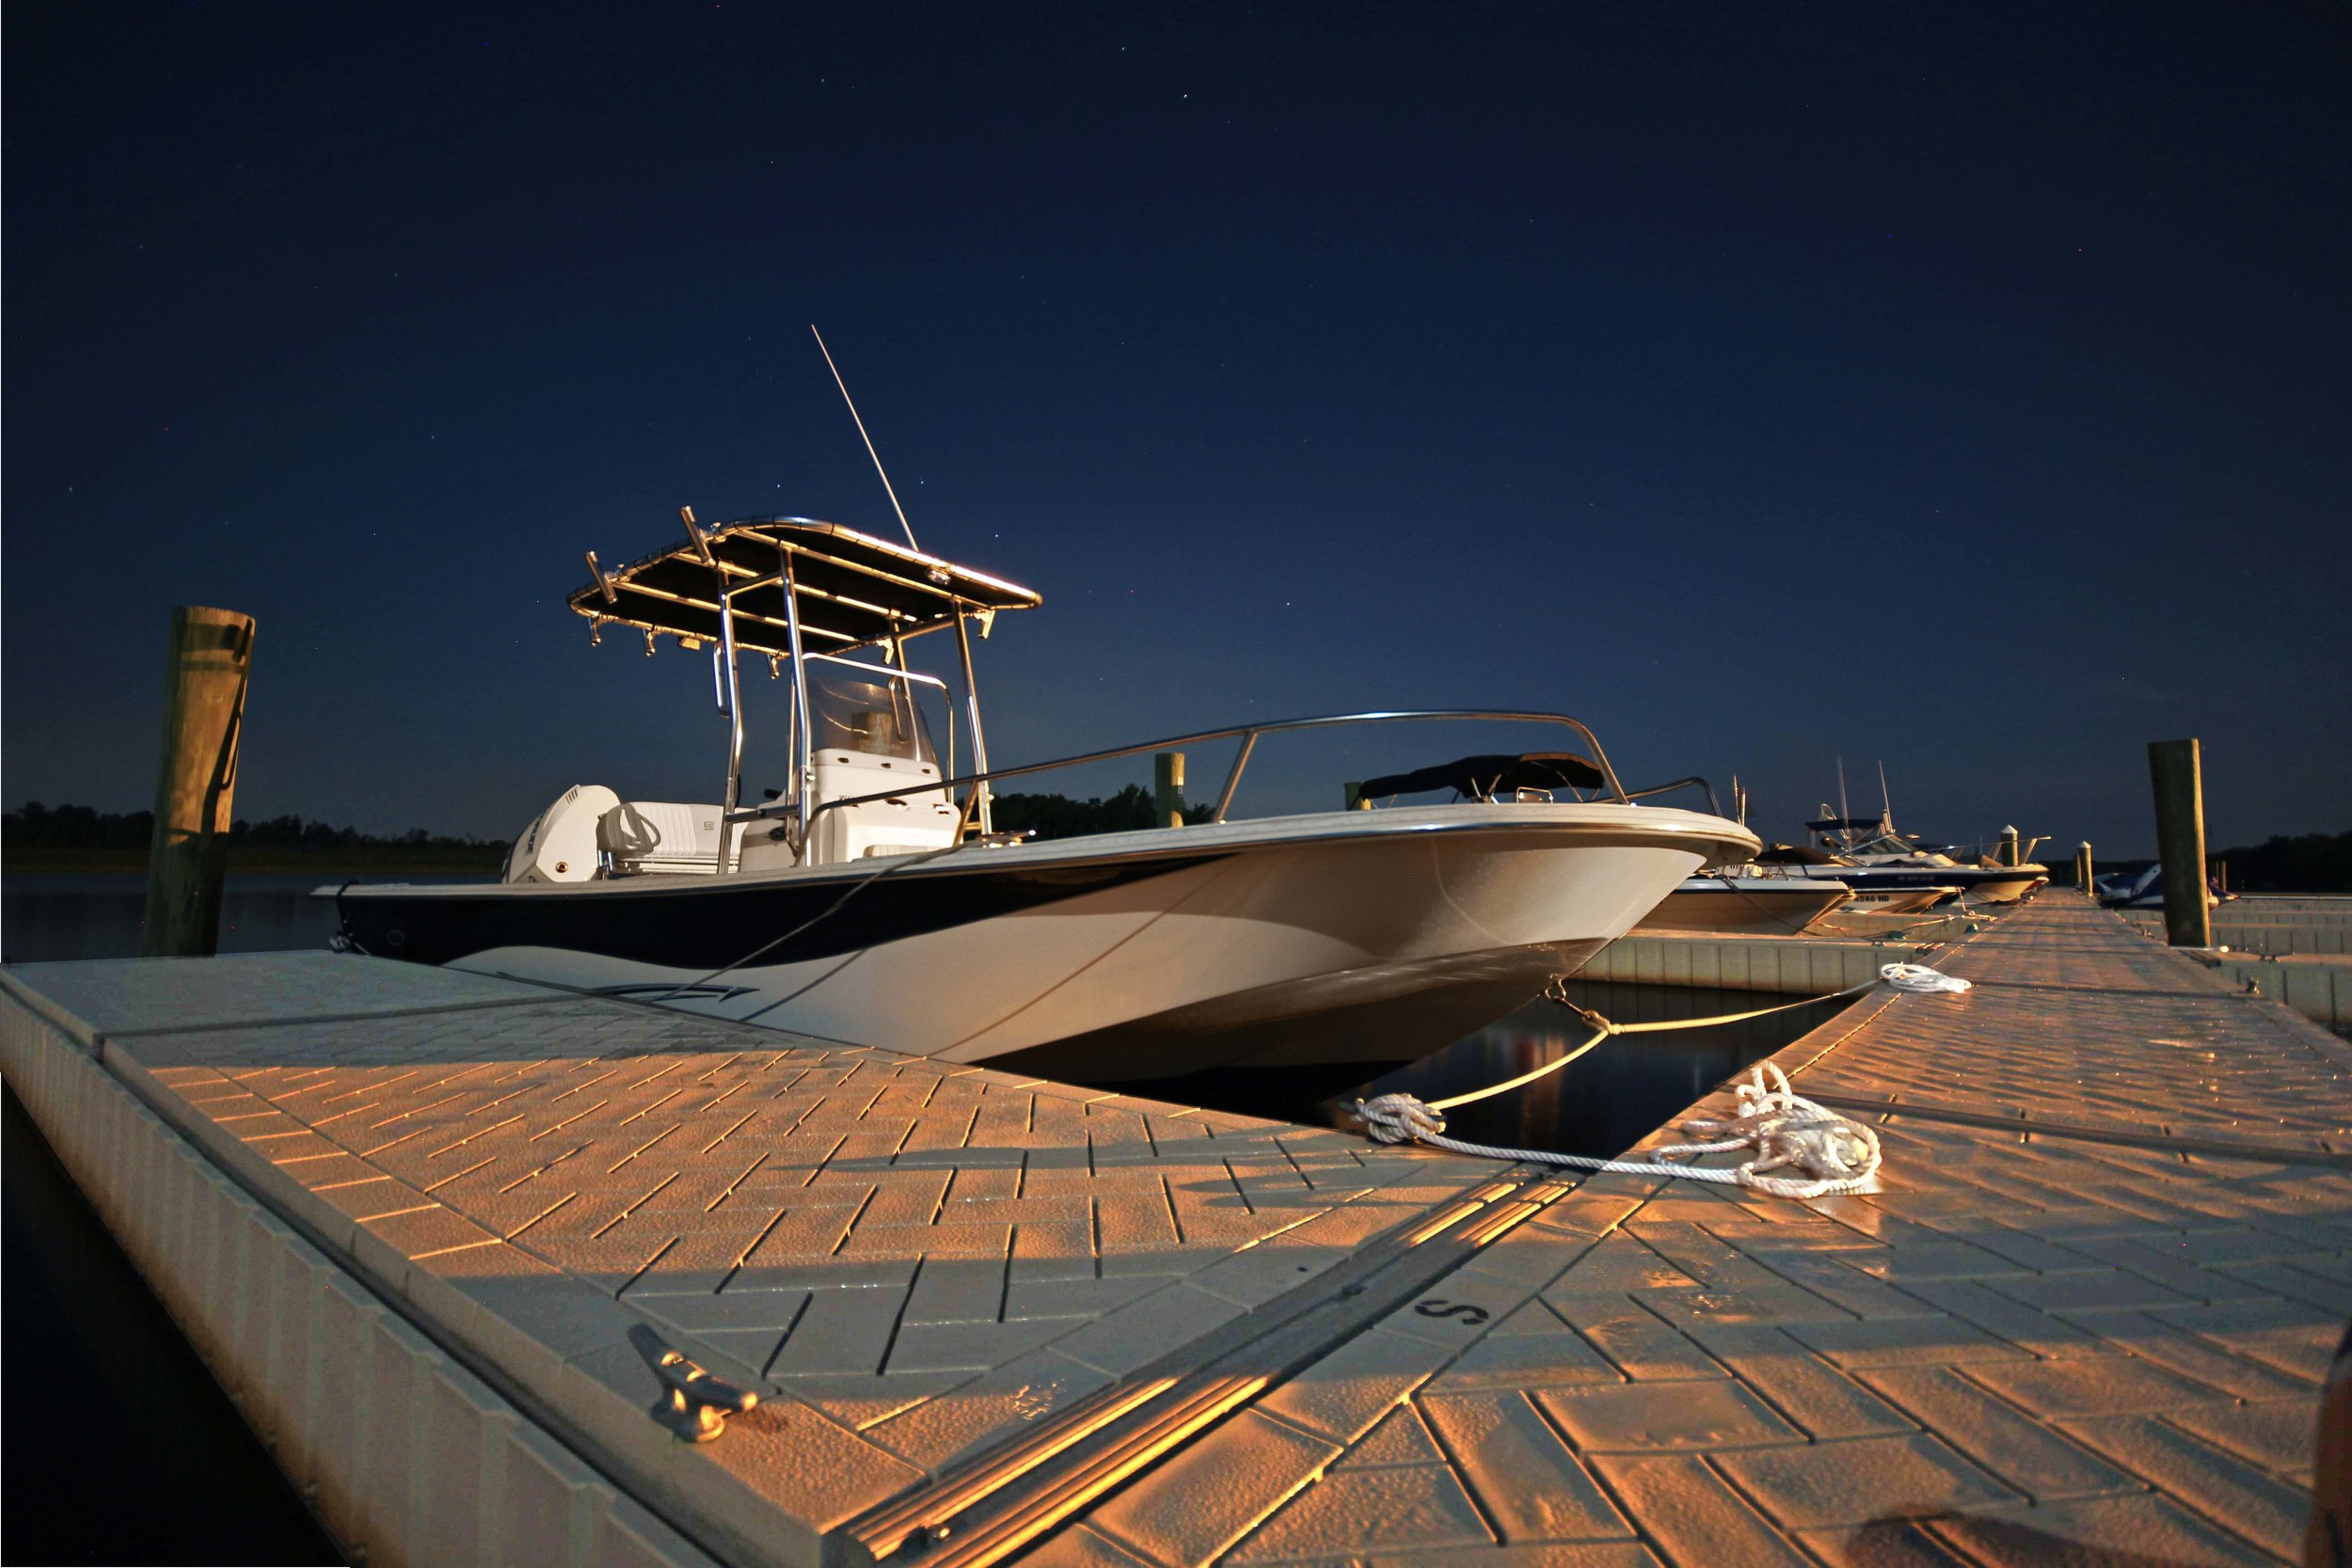 River-Beach-Friday-Night-Lightened-Dock.jpg